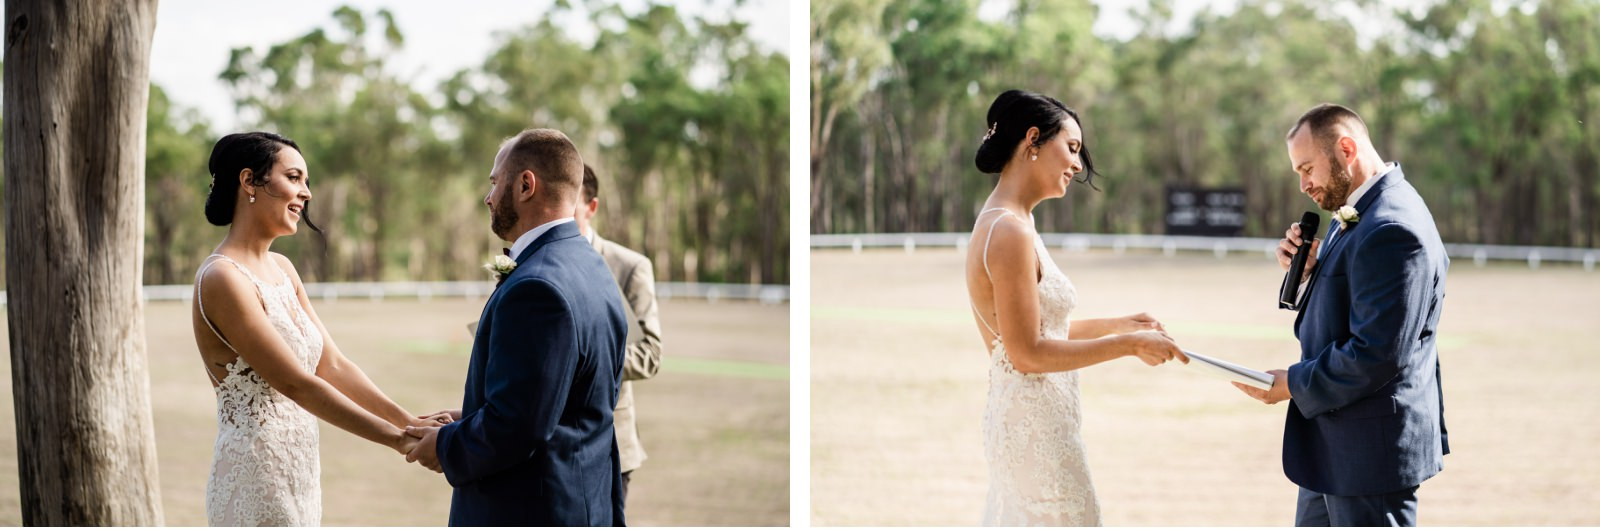 wandin-valley-estate-winery-lovedale-wedding-hunter-valley-wedding-photographer-26